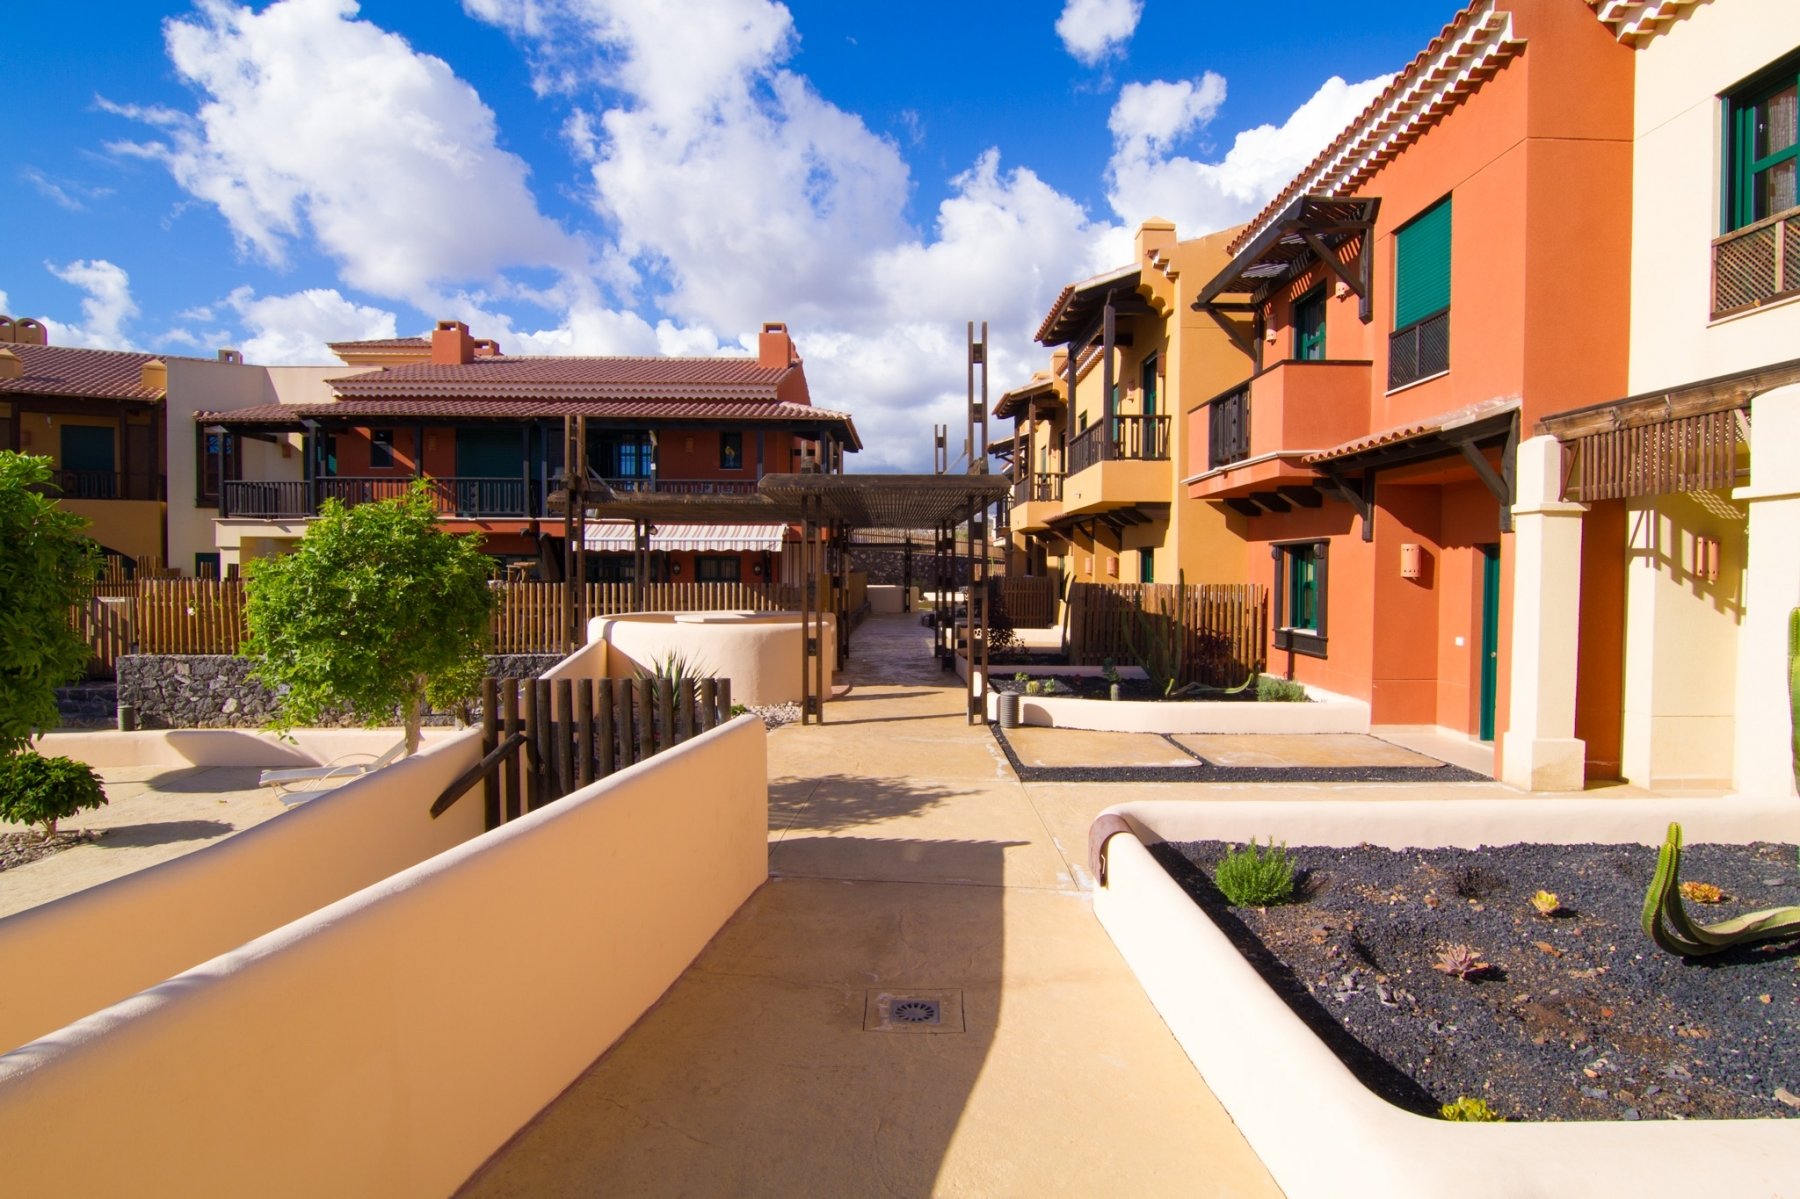 Properties for Sale in Tenerife, Canary Islands, Spain | SylkWayStar Real Estate. Luxury 3 bedrooms townhouse on the first line - San Blas . Image-22440